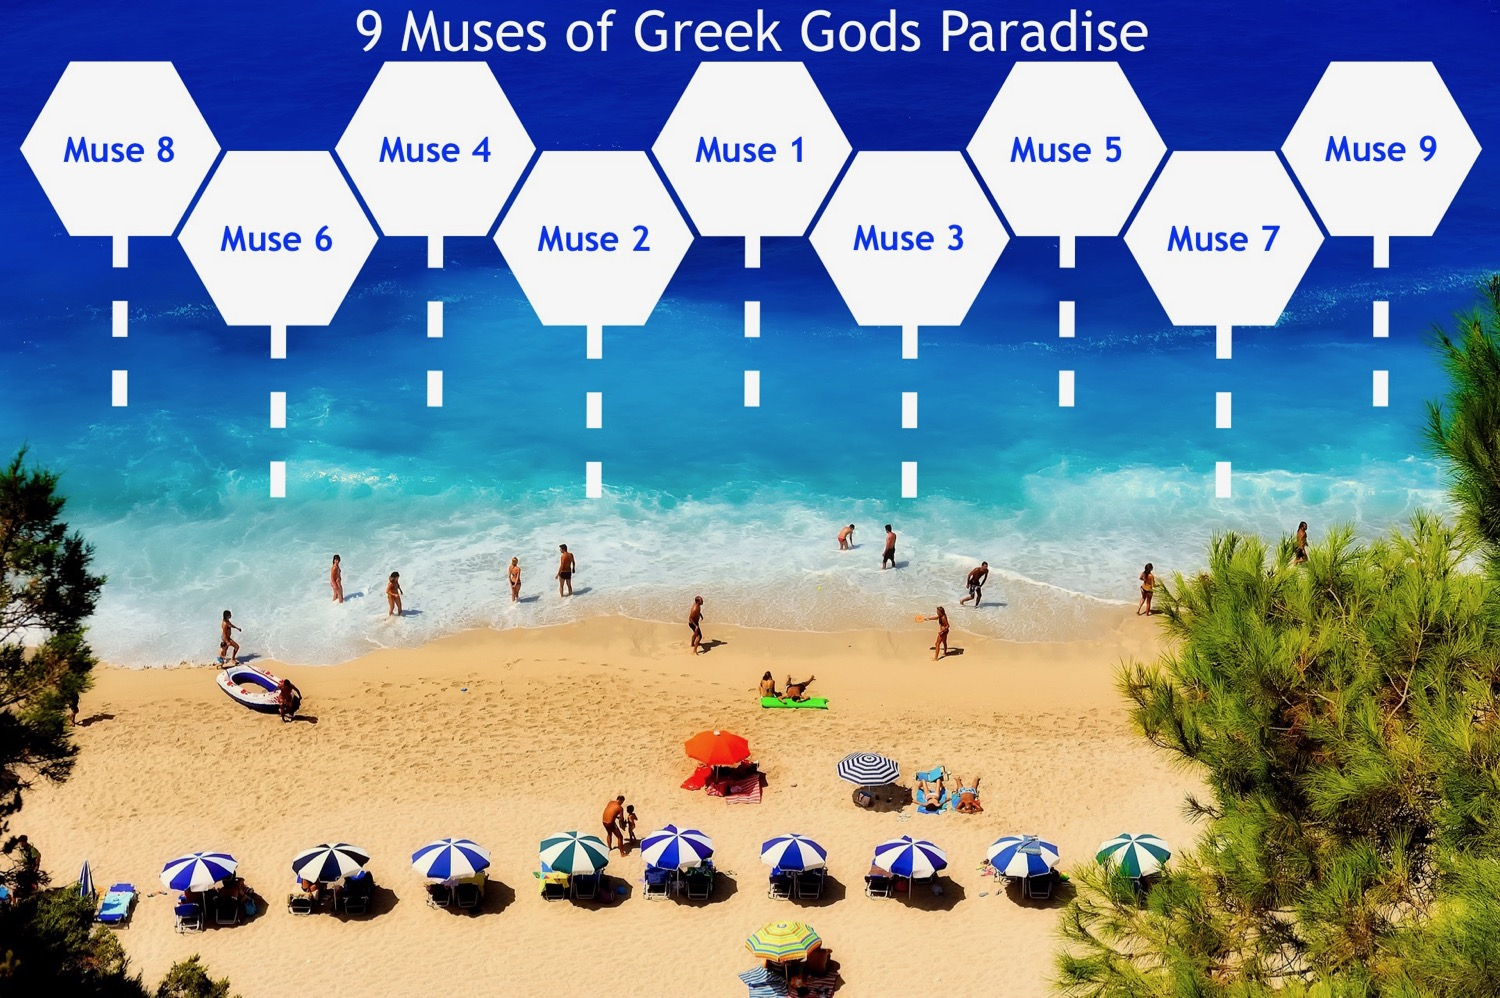 9 Muses of Greek Gods Paradise